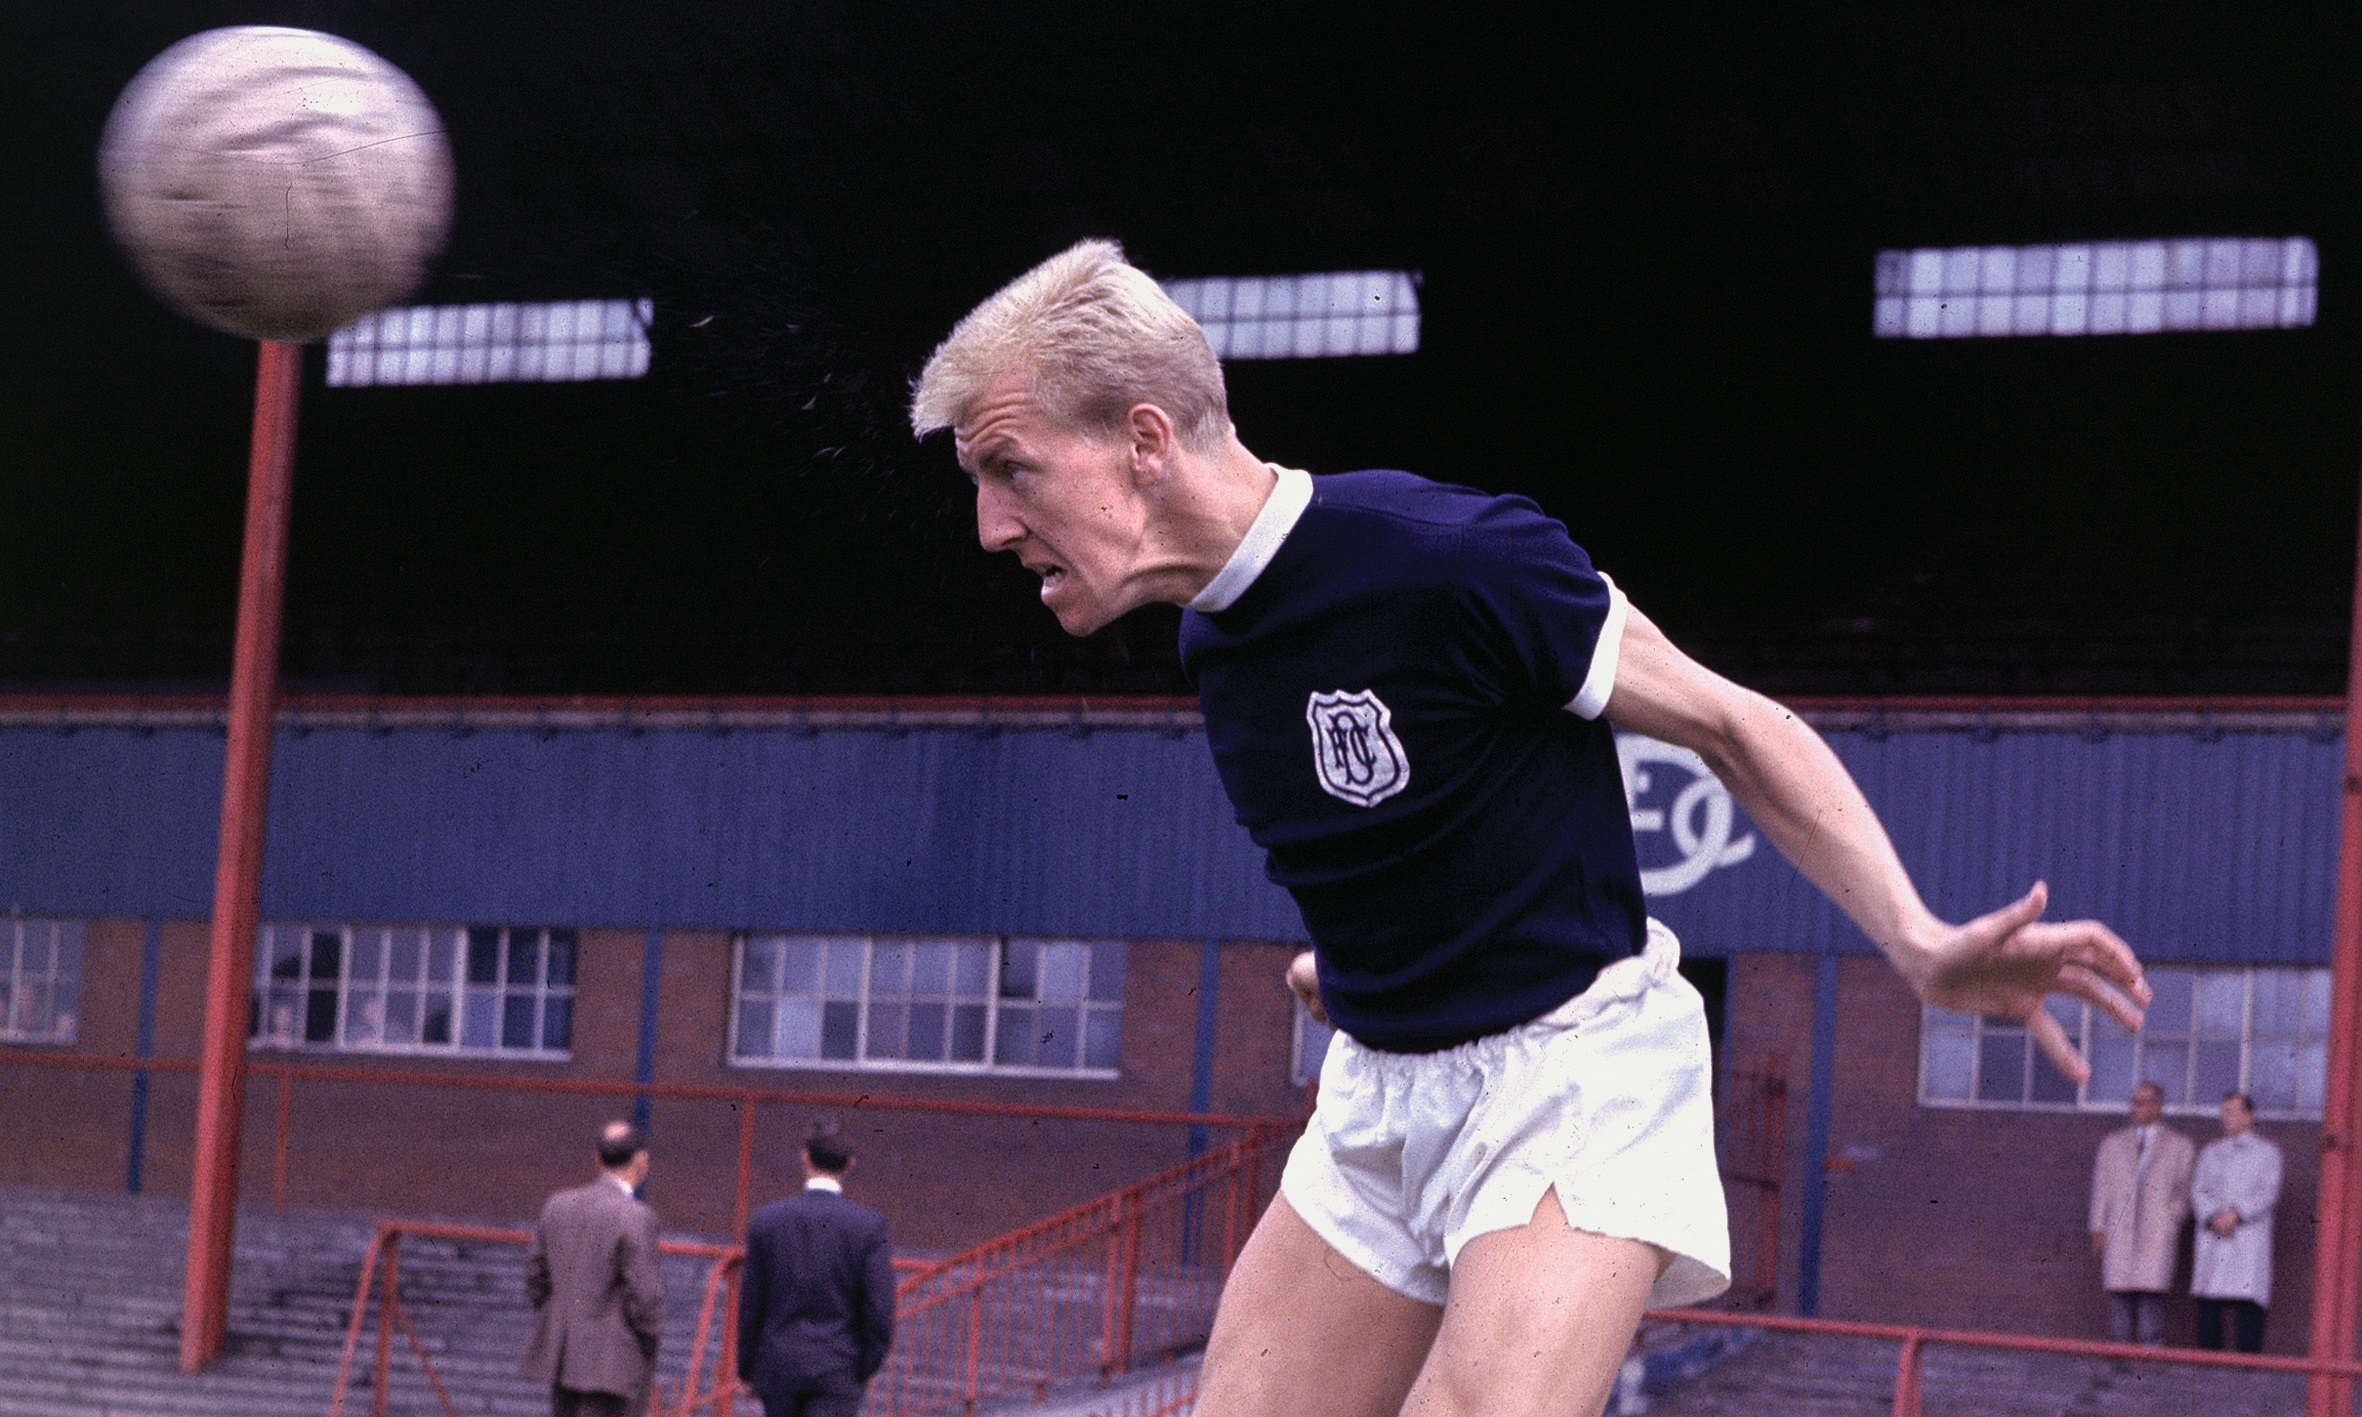 Ian Ure, who played for Dundee side which won the league in 1962